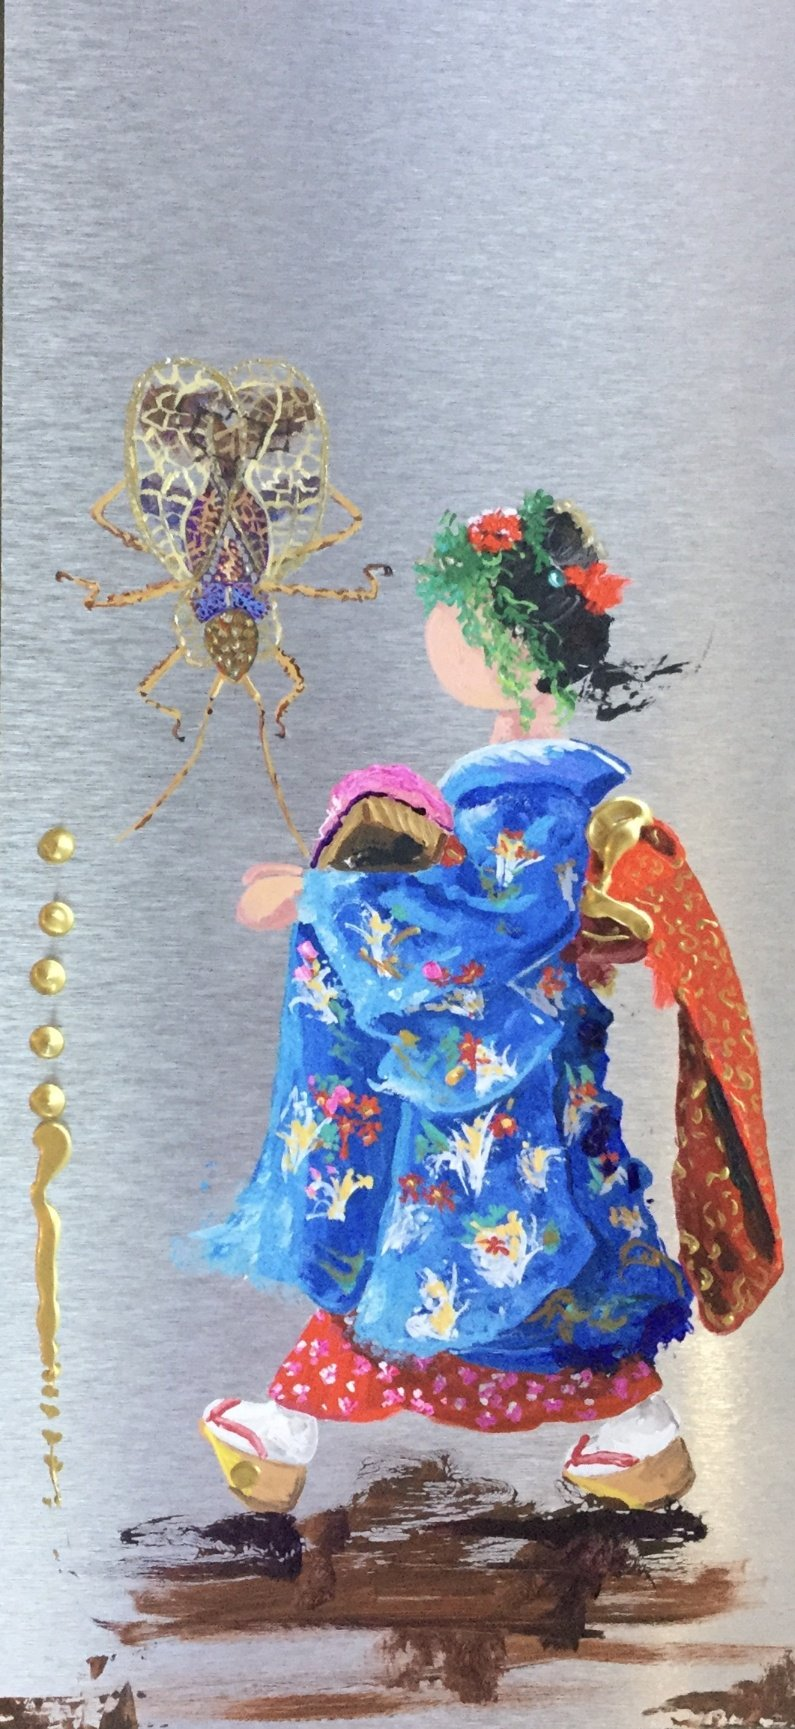 KIMONO 2 /  Original Painting On Aluminum  - By Pauline Paquin